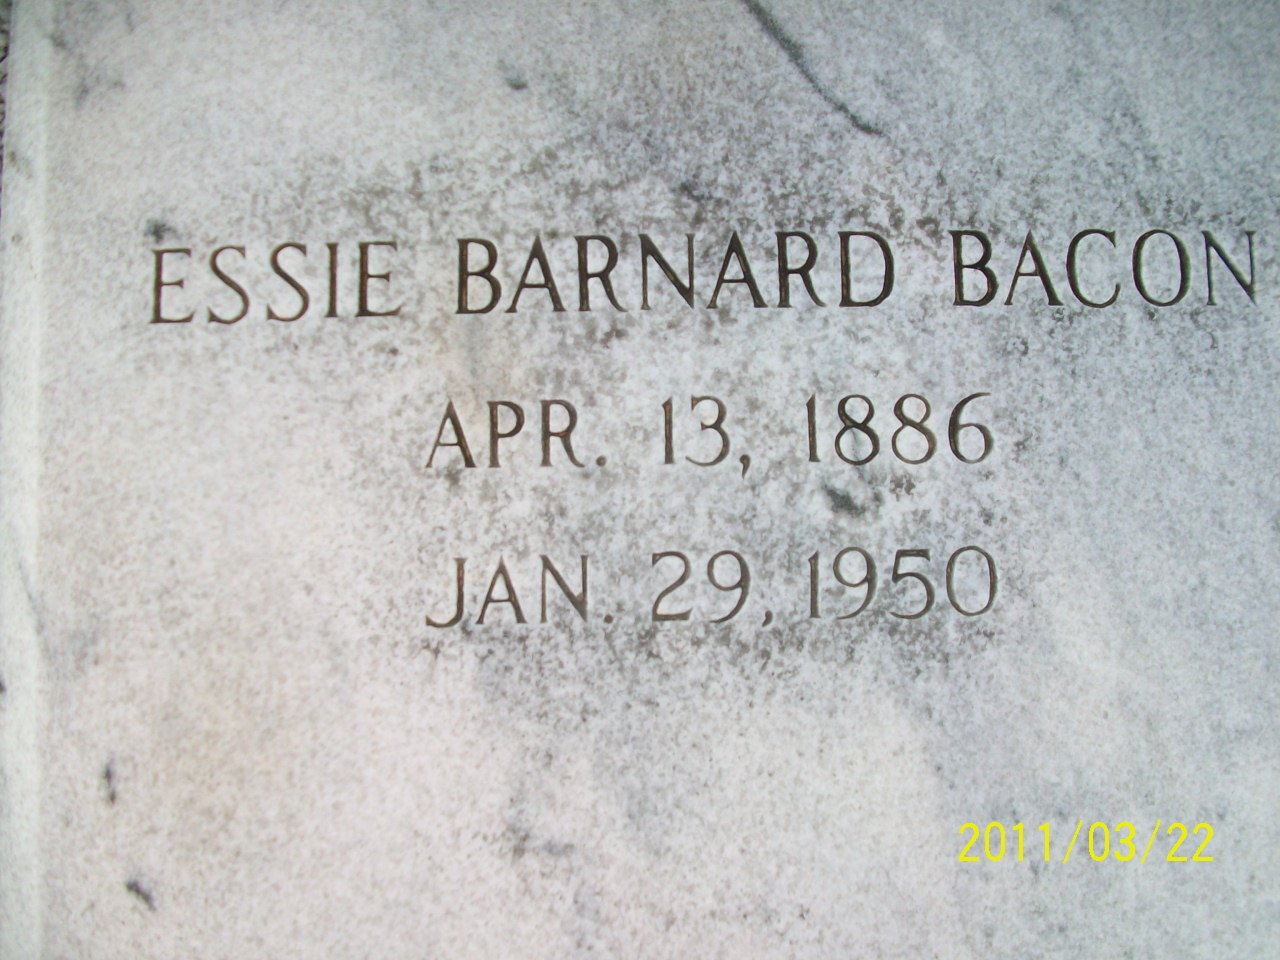 Essie <i>Barnard</i> Bacon